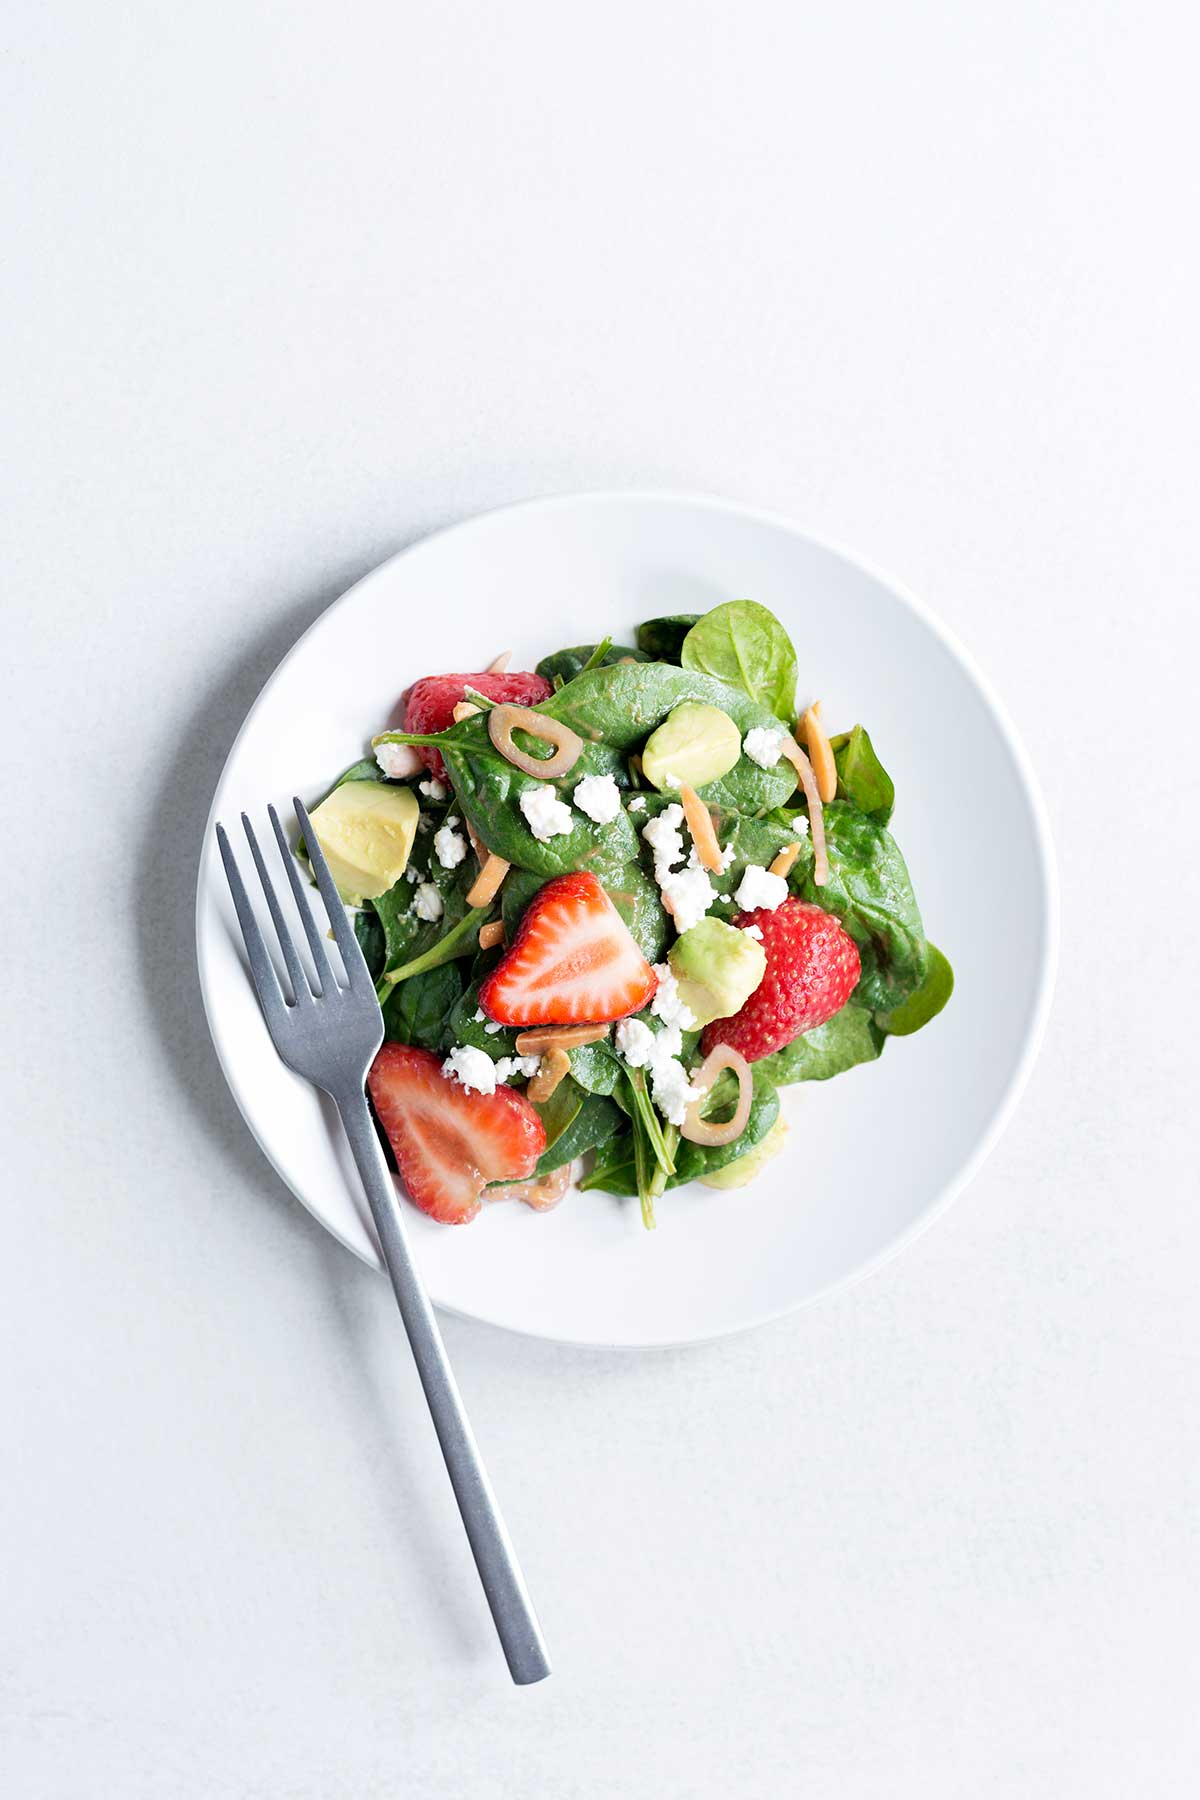 Overhead photo of a strawberry spinach salad on a white plate with a silver fork.